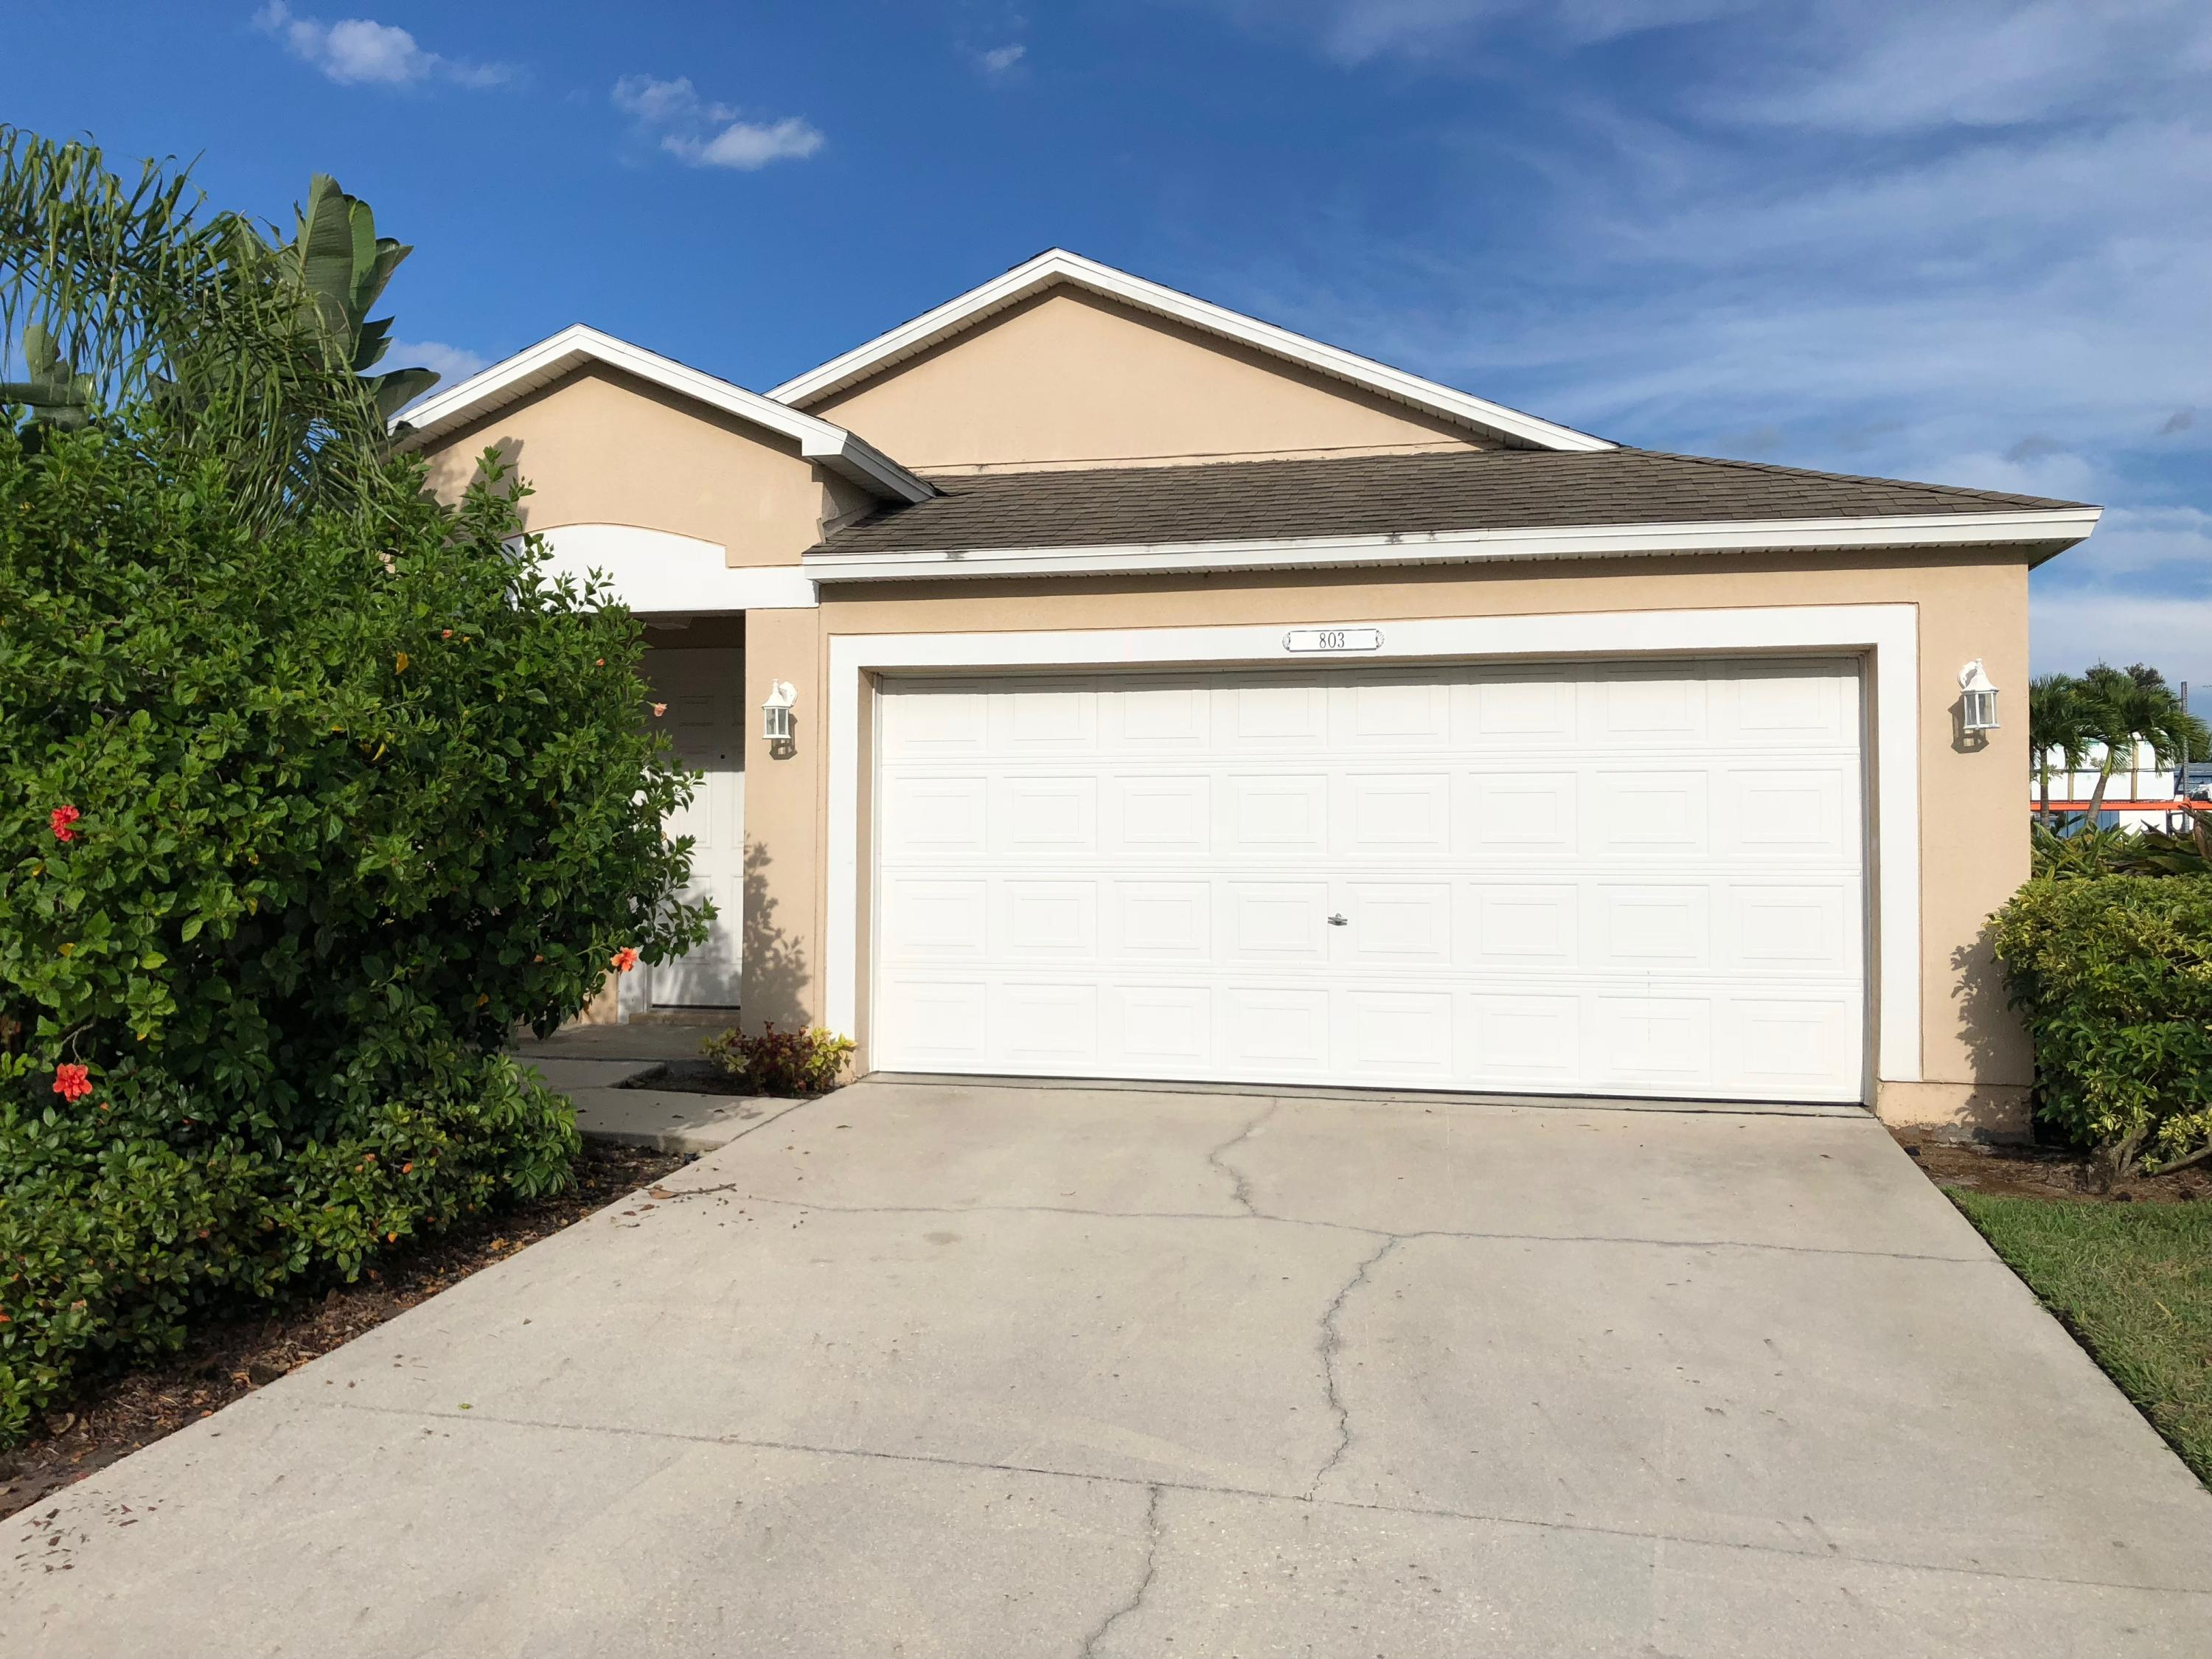 803 Greenleaf Vero Beach 32960